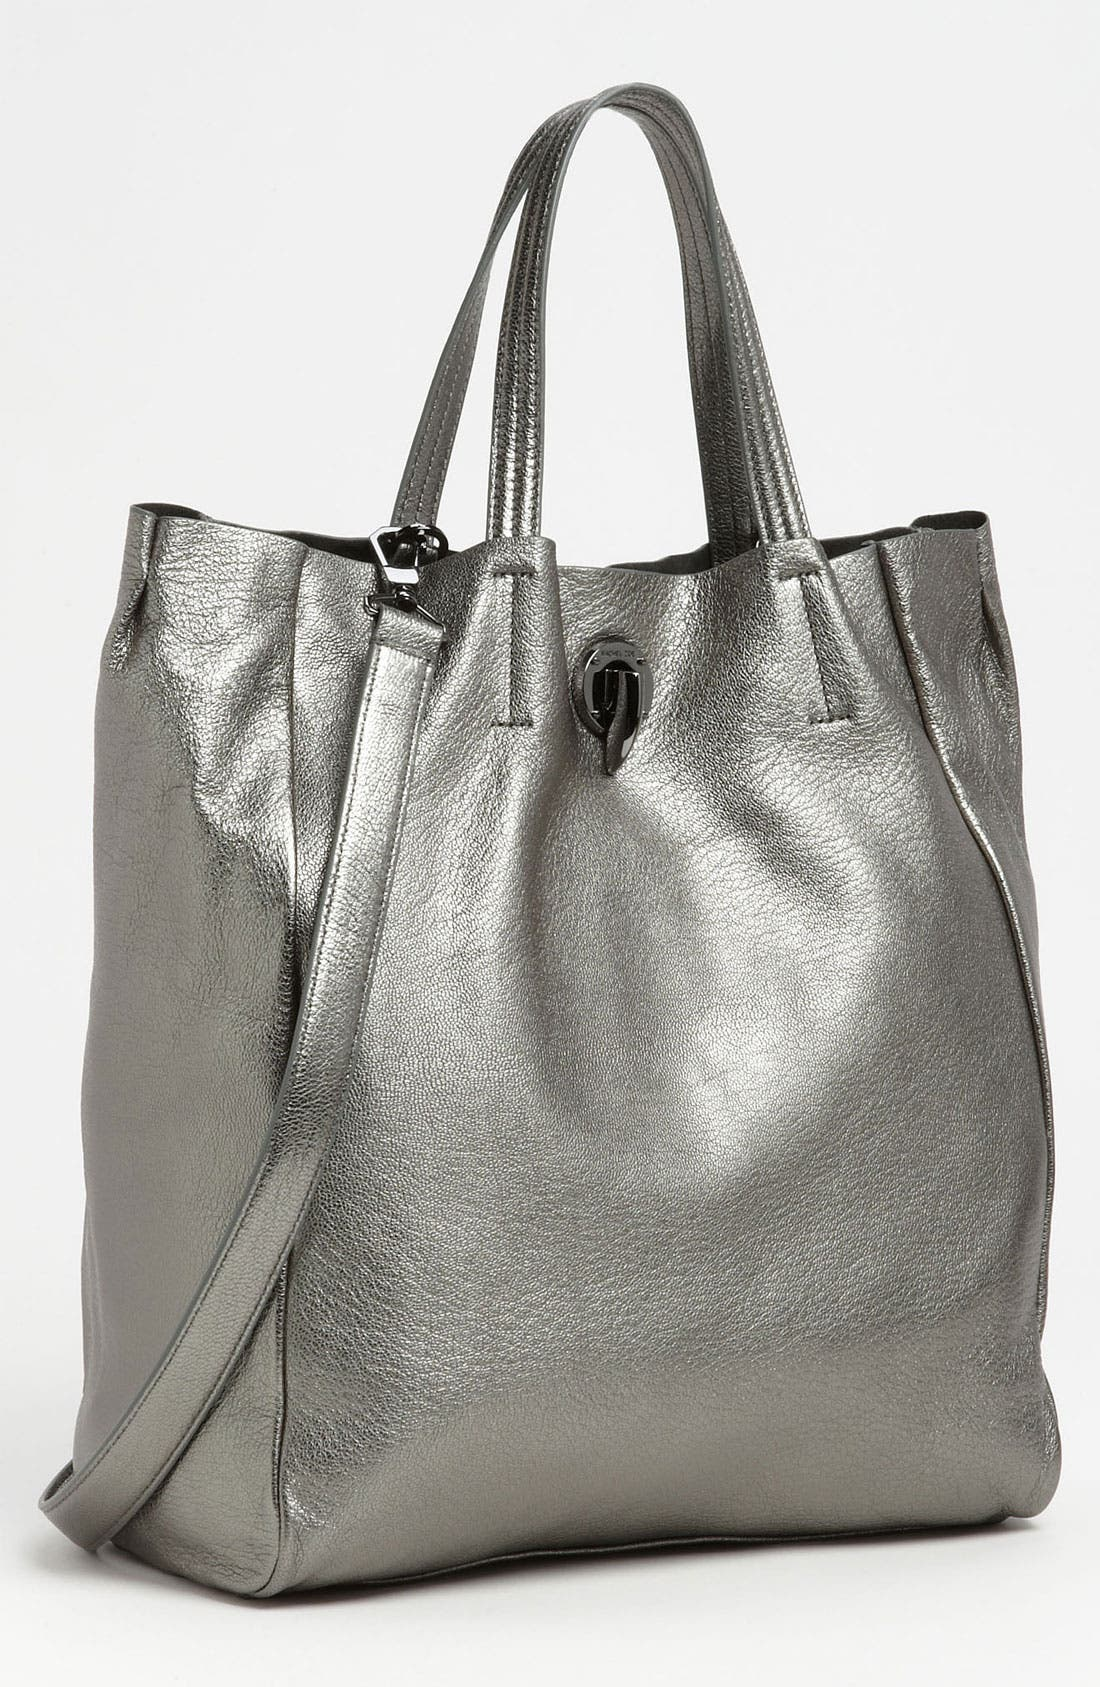 Alternate Image 1 Selected - Rachel Zoe 'Eve' Leather Tote